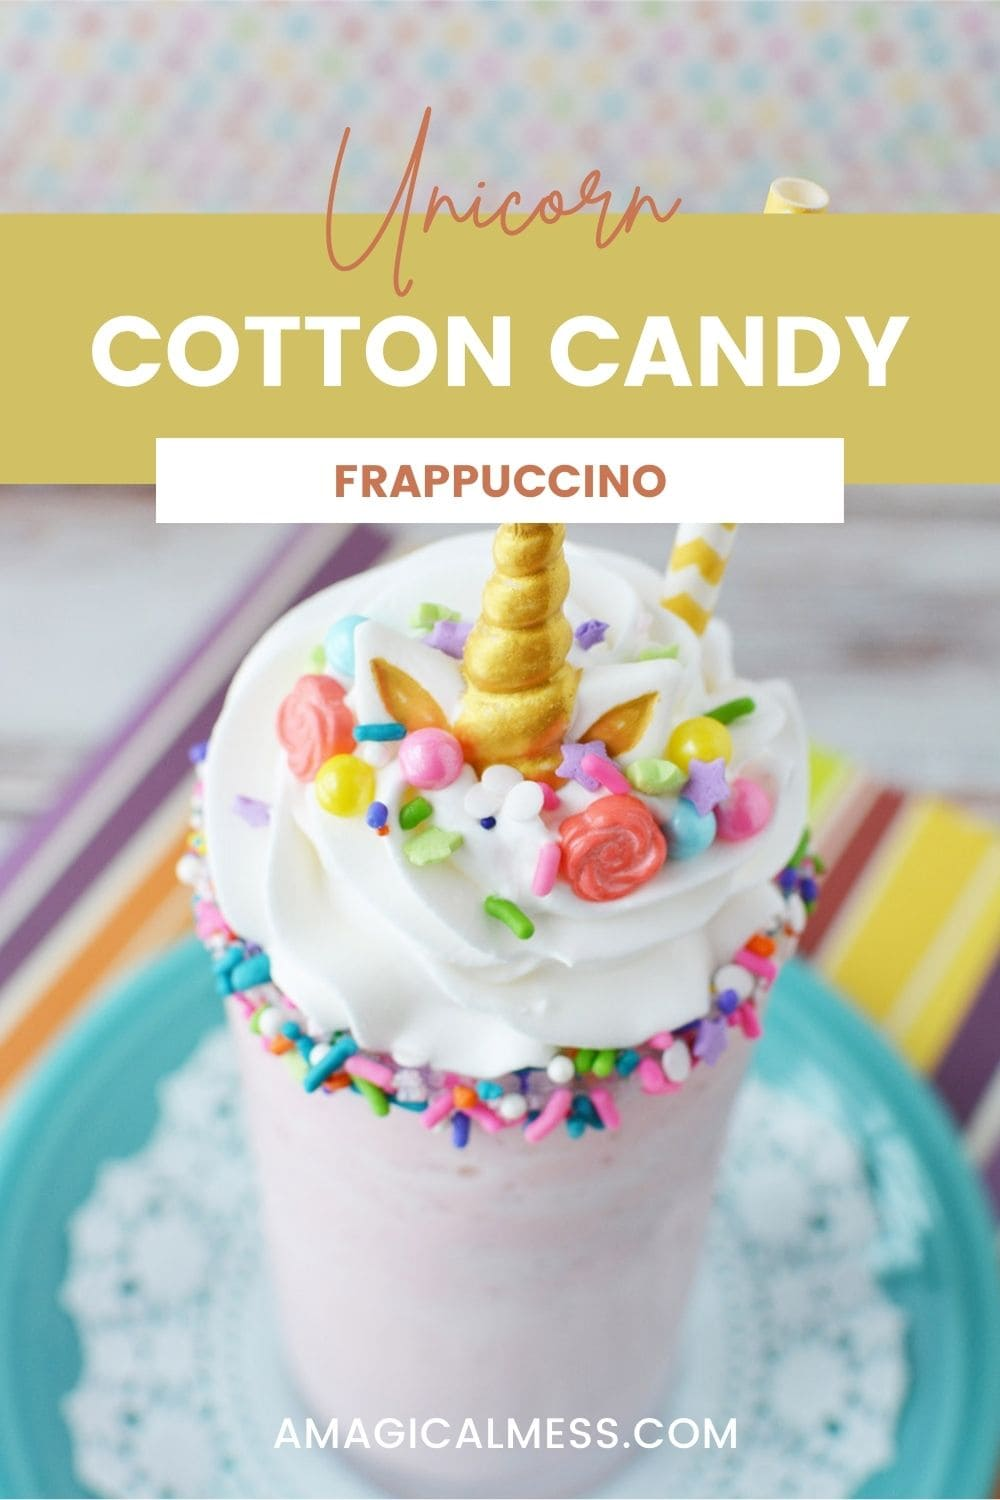 Cotton candy frappuccino topped with unicorn horn and sprinkles.